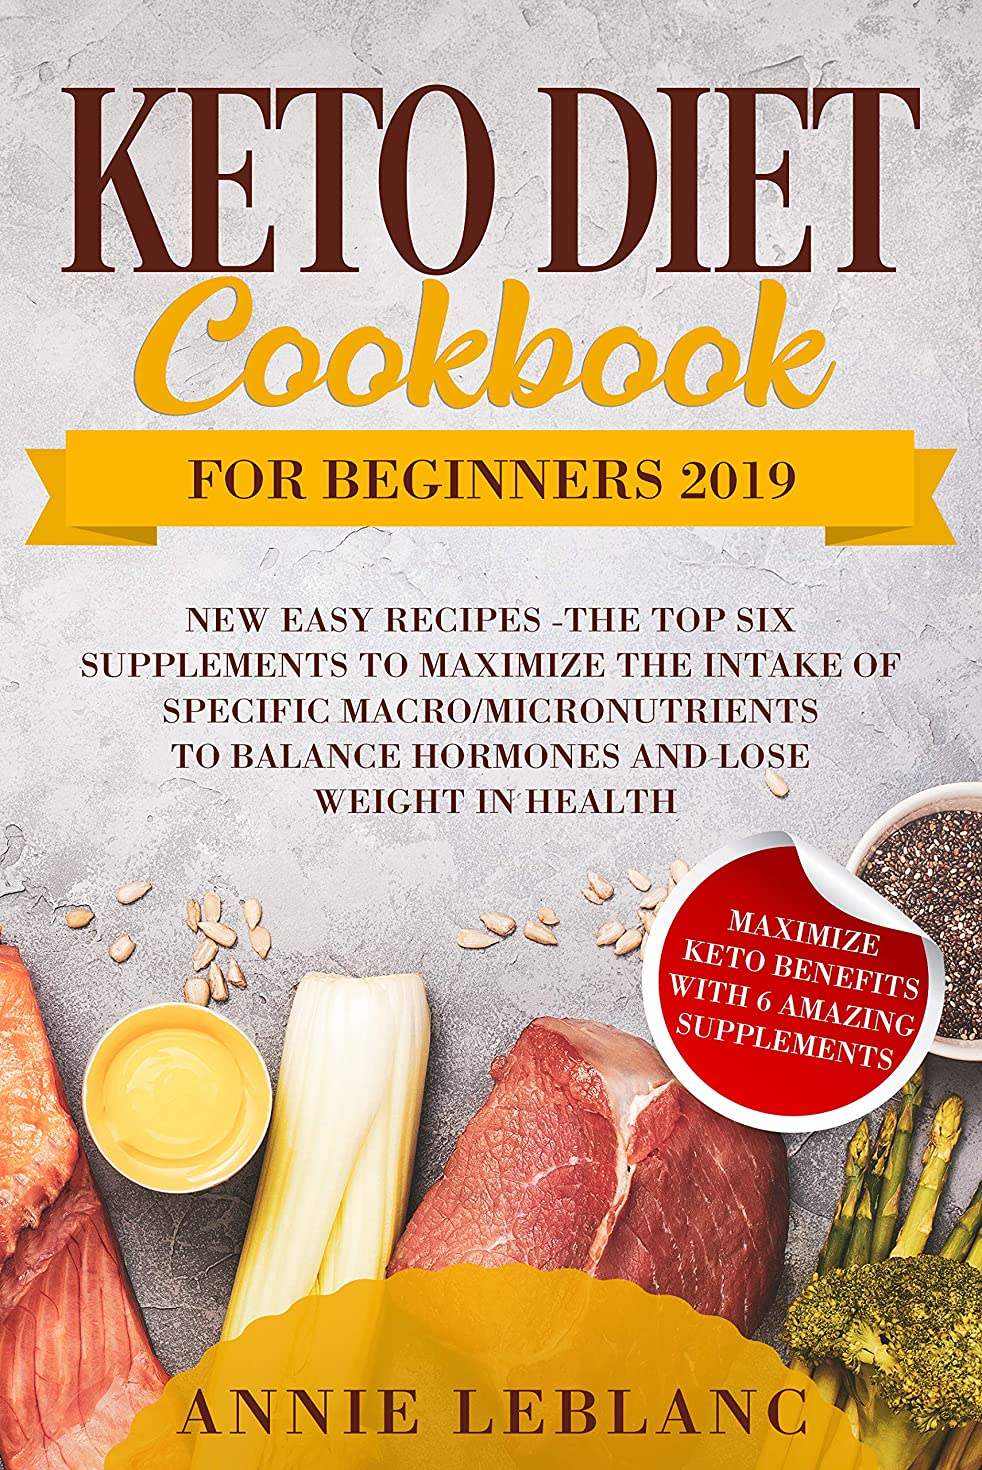 KETO DIET COOKBOOK FOR BEGINNERS 2019: NEW EASY RECIPES   The TOP SIX SUPPLEMENTS to maximize the intake of specific macro, micronutrients to balance hormones ... and lose weight in health (English Edition)